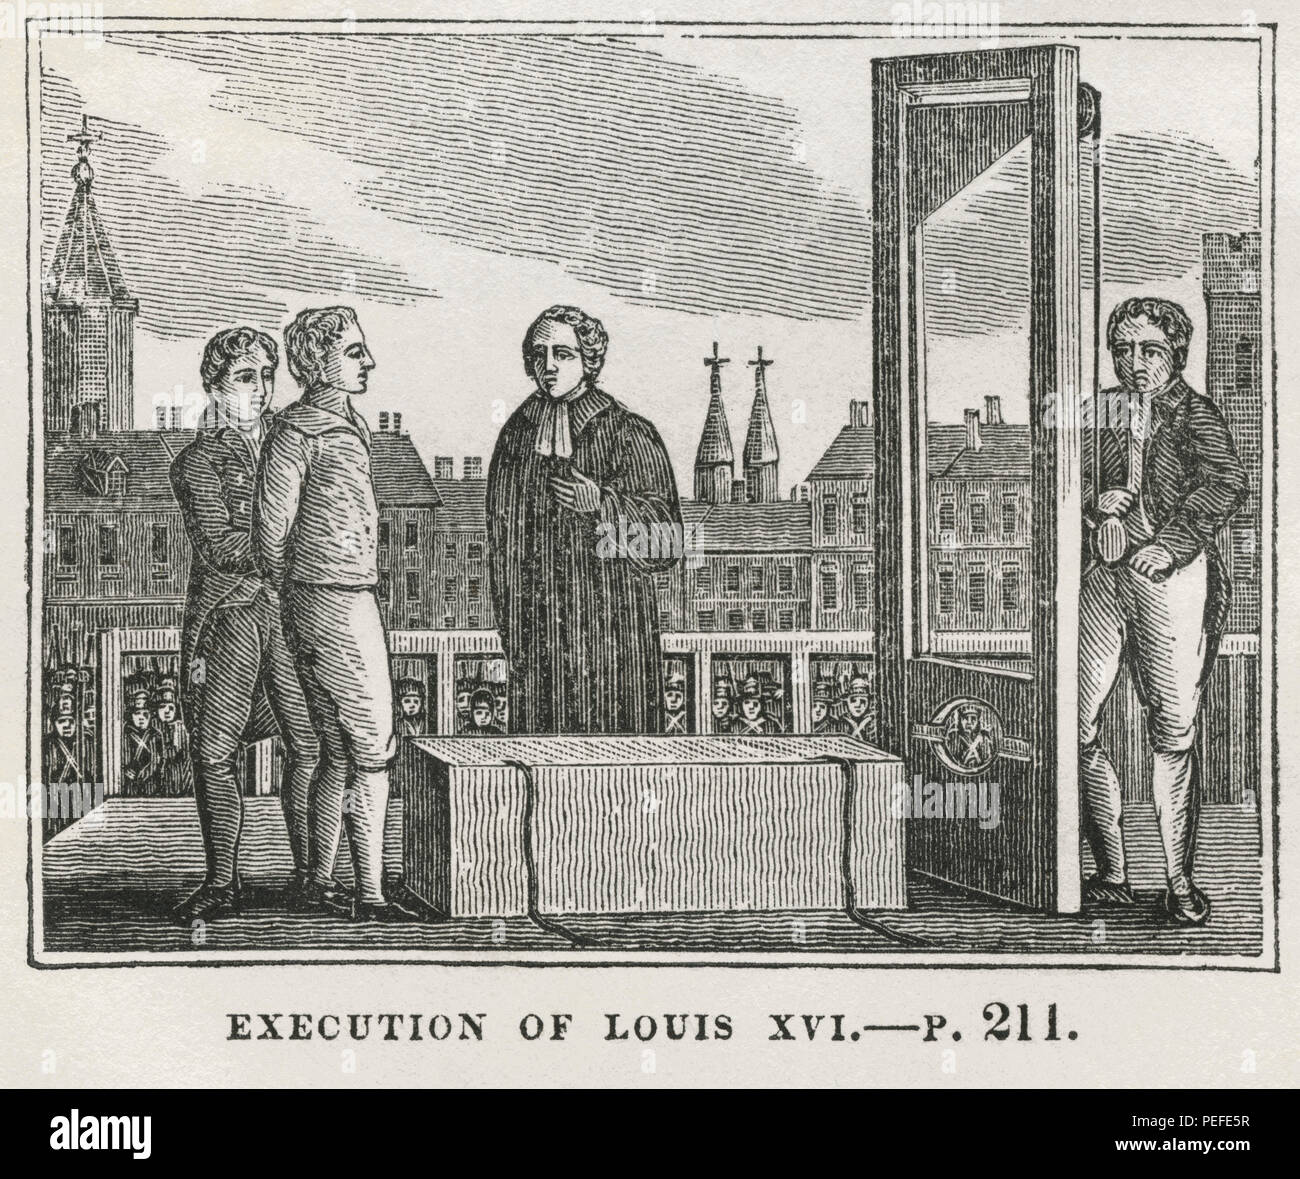 Execution of Louis XVI, Illustration from the Book, Historical Cabinet, L.H. Young Publisher, New Haven, 1834 - Stock Image